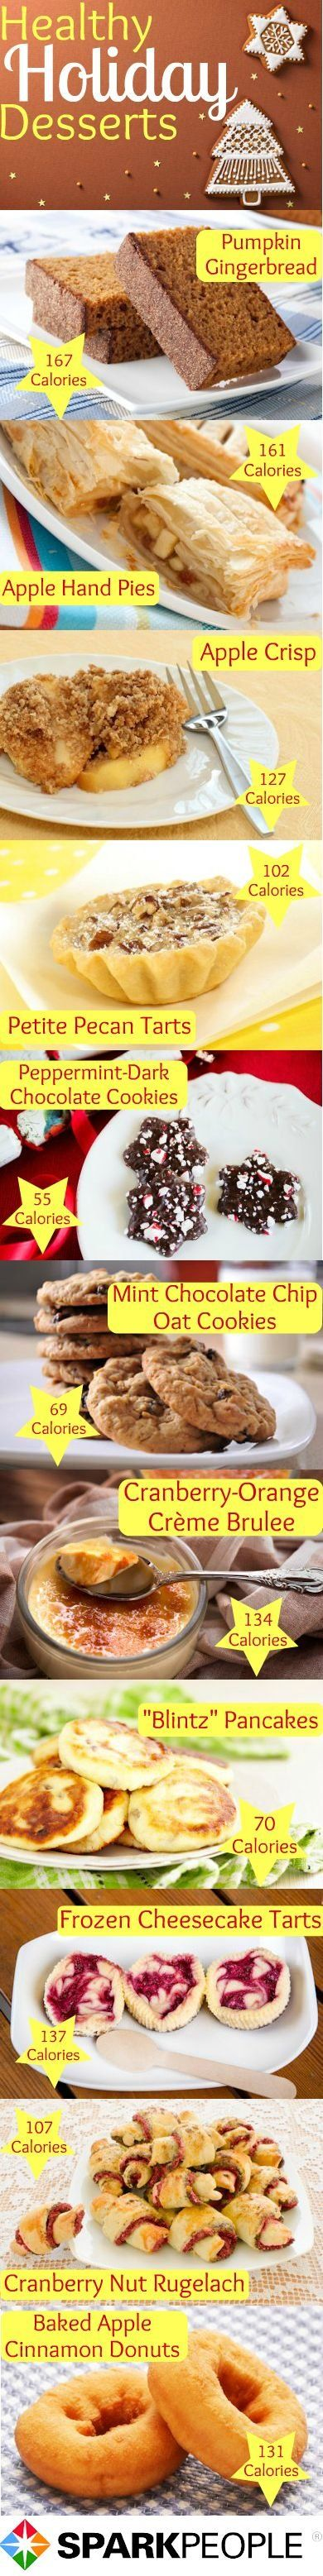 Healthy Holiday Desserts: These recipes are so delicious, no one will know they are healthy! Click for full recipe details!   via @SparkPeople #food #treat #sweet